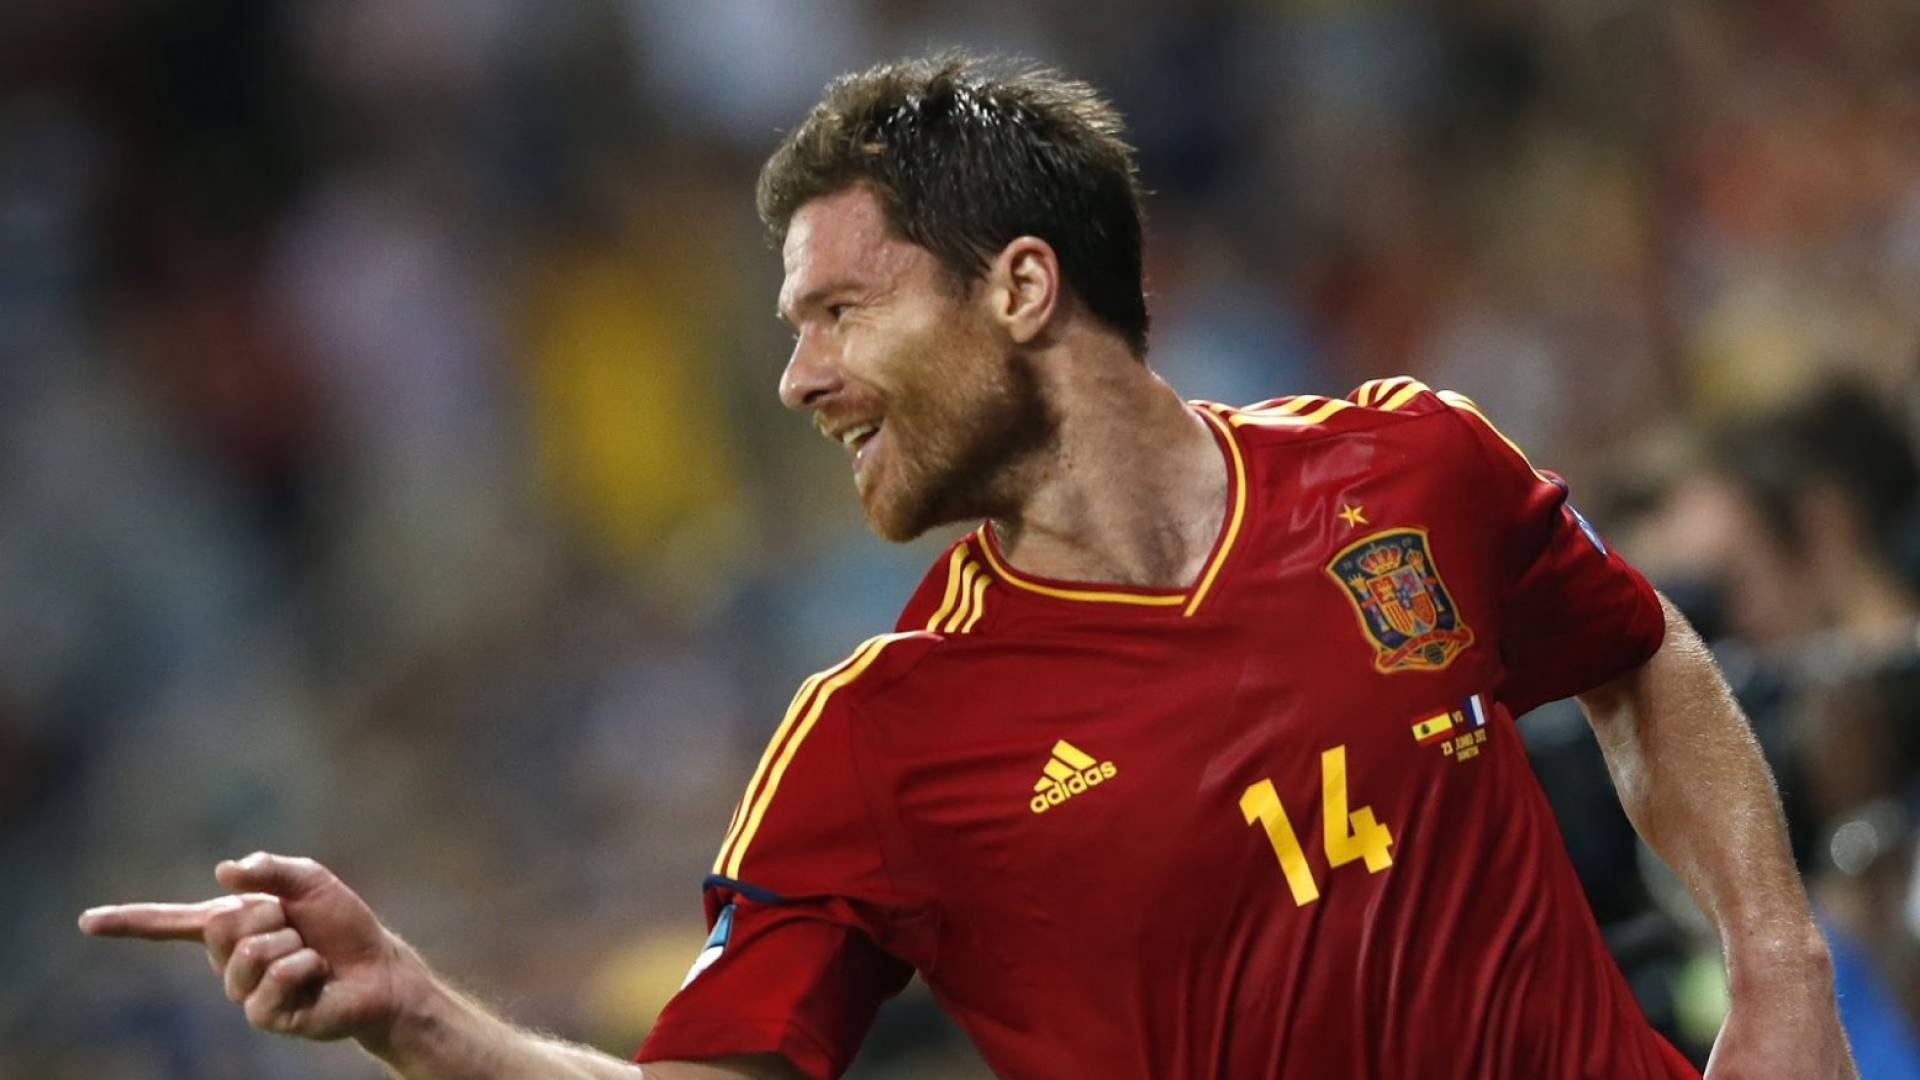 Xabi Alonso Wallpapers Wallpaper Cave